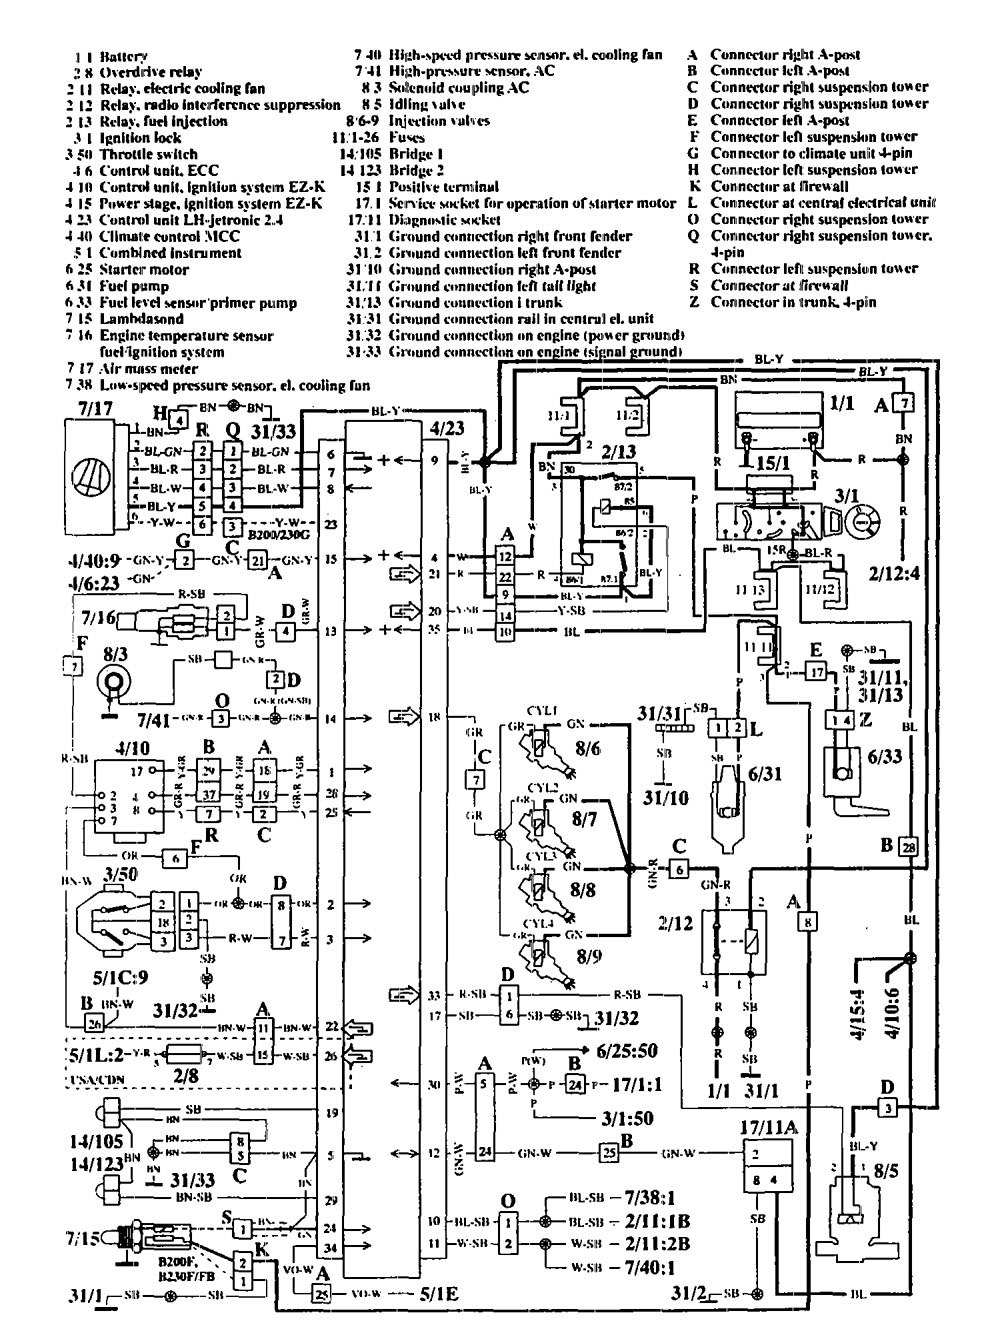 Volvo Wiring Diagram Fuel Controls V on 2000 Gmc Sierra 1500 Wiring Diagram